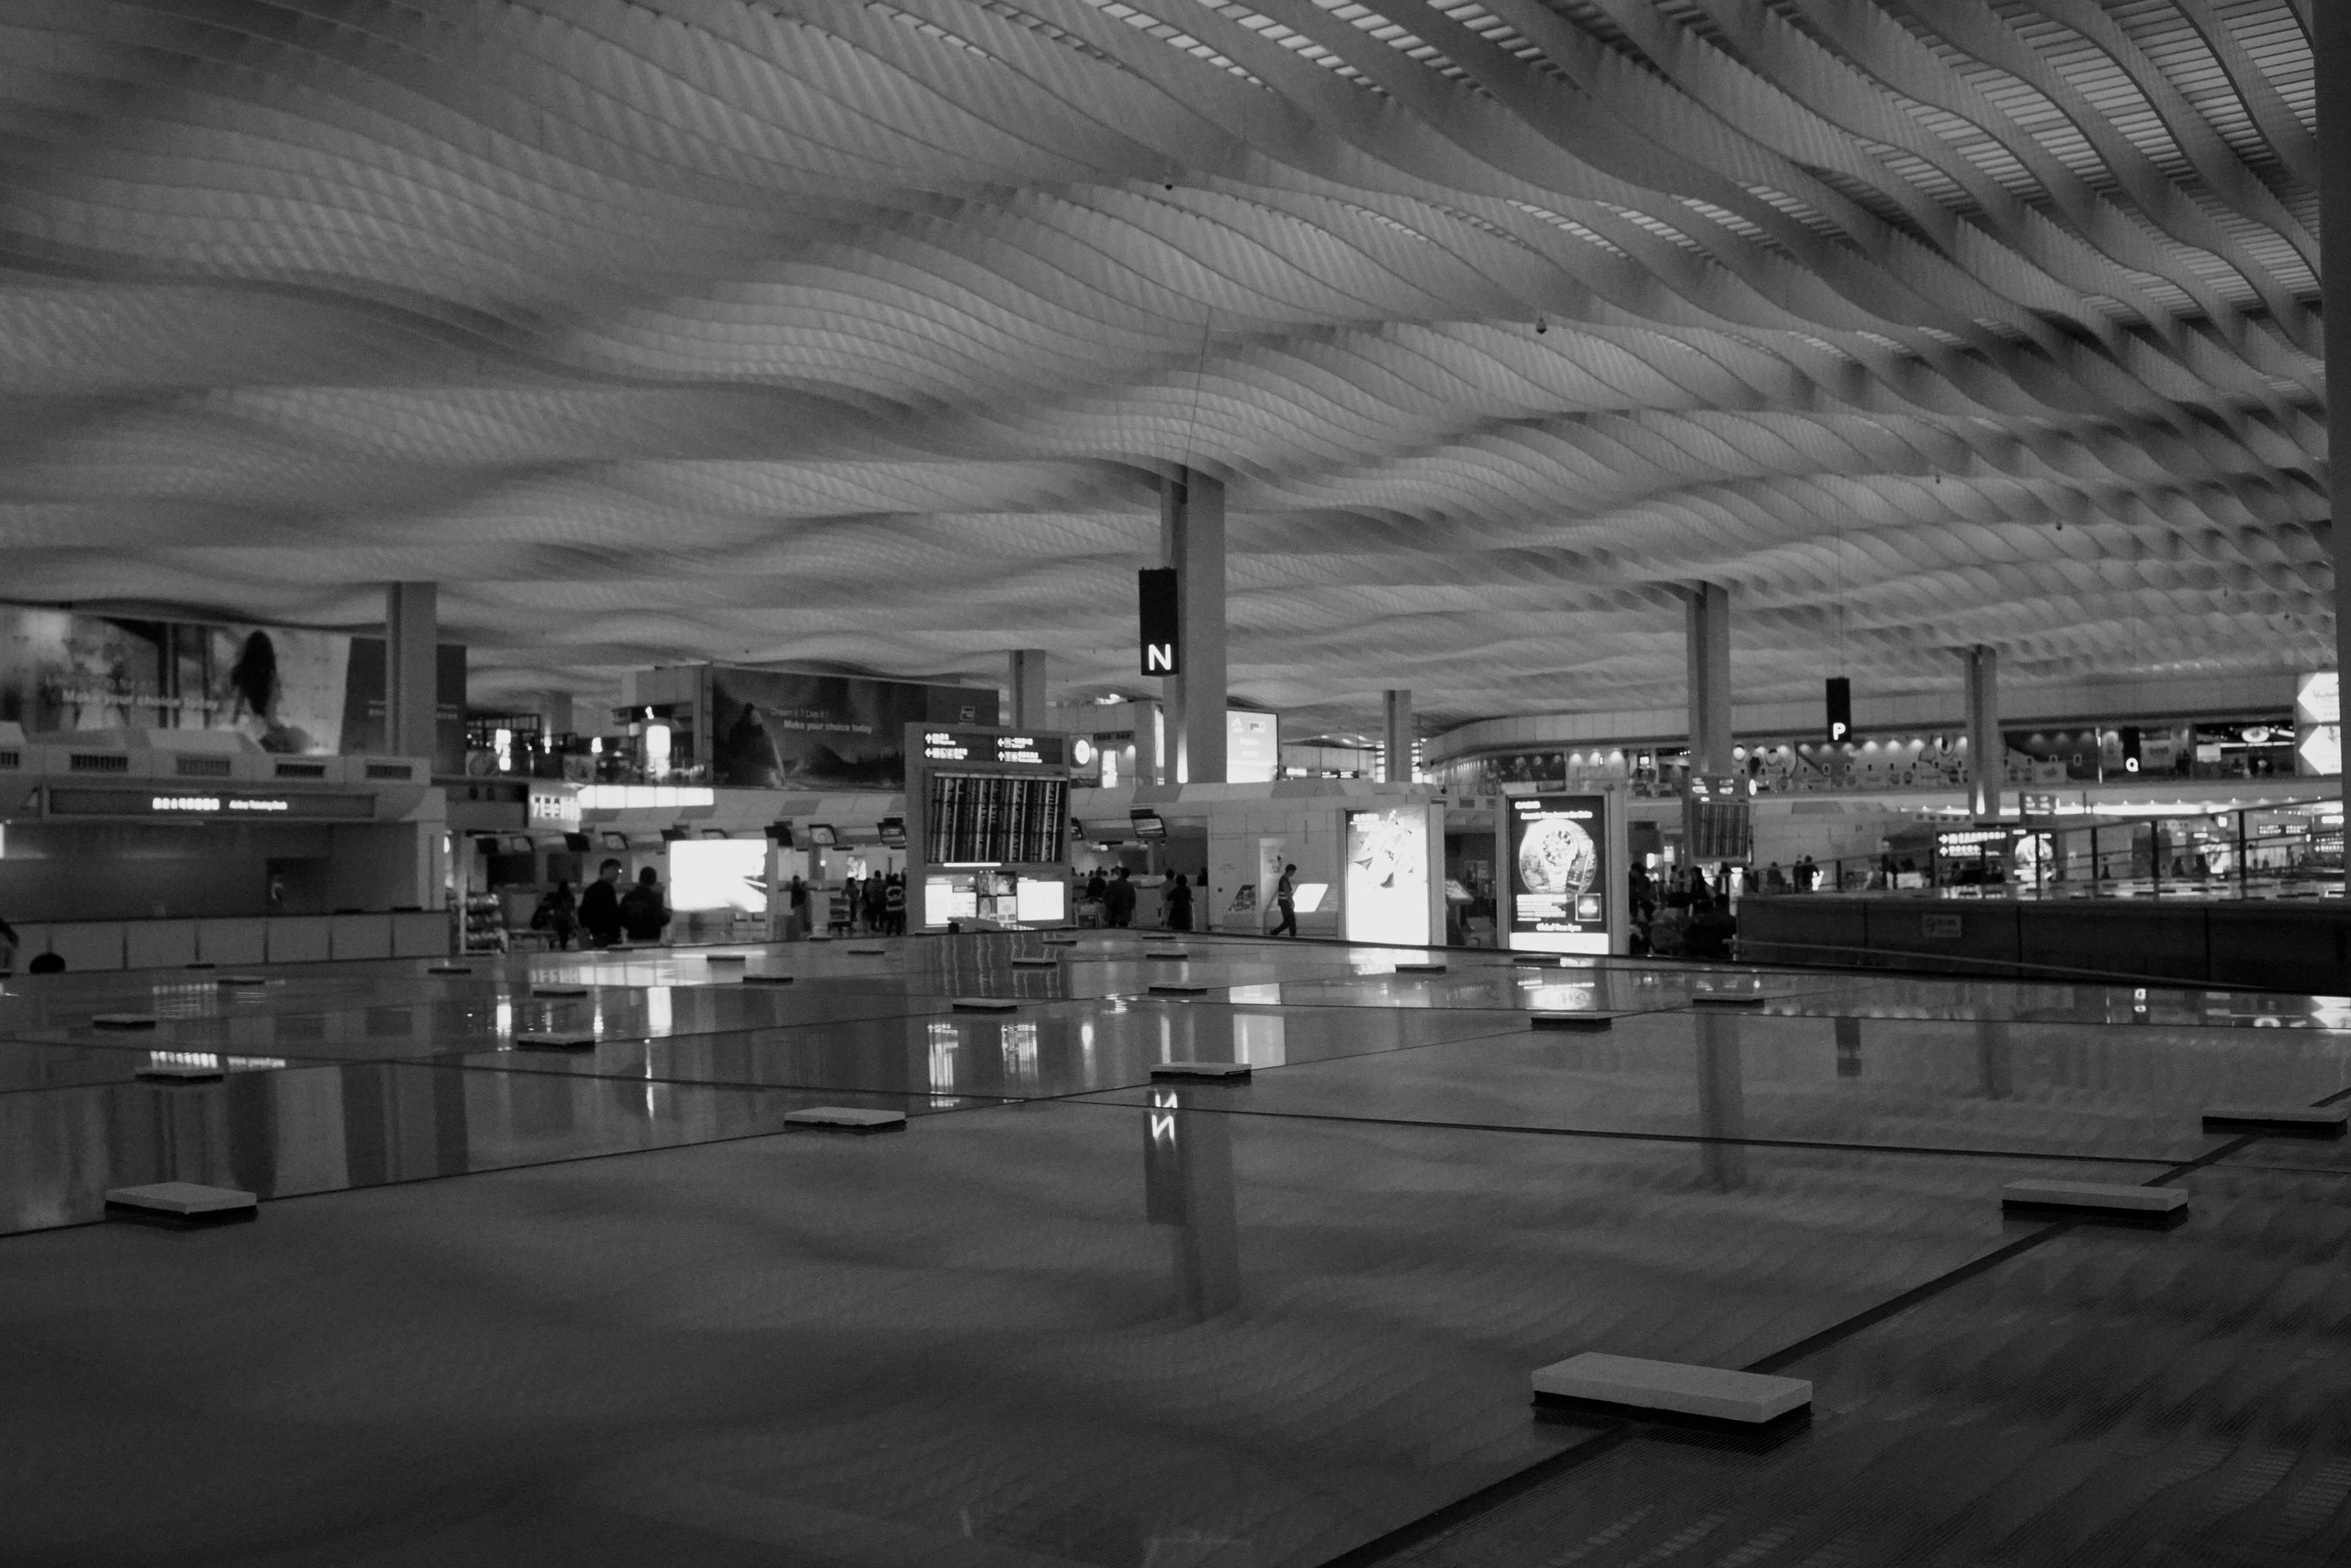 Leica 3.5cm F3.5 Architecture Built Structure Airport Sony No People City Tim Wong Hong Kong Black And White